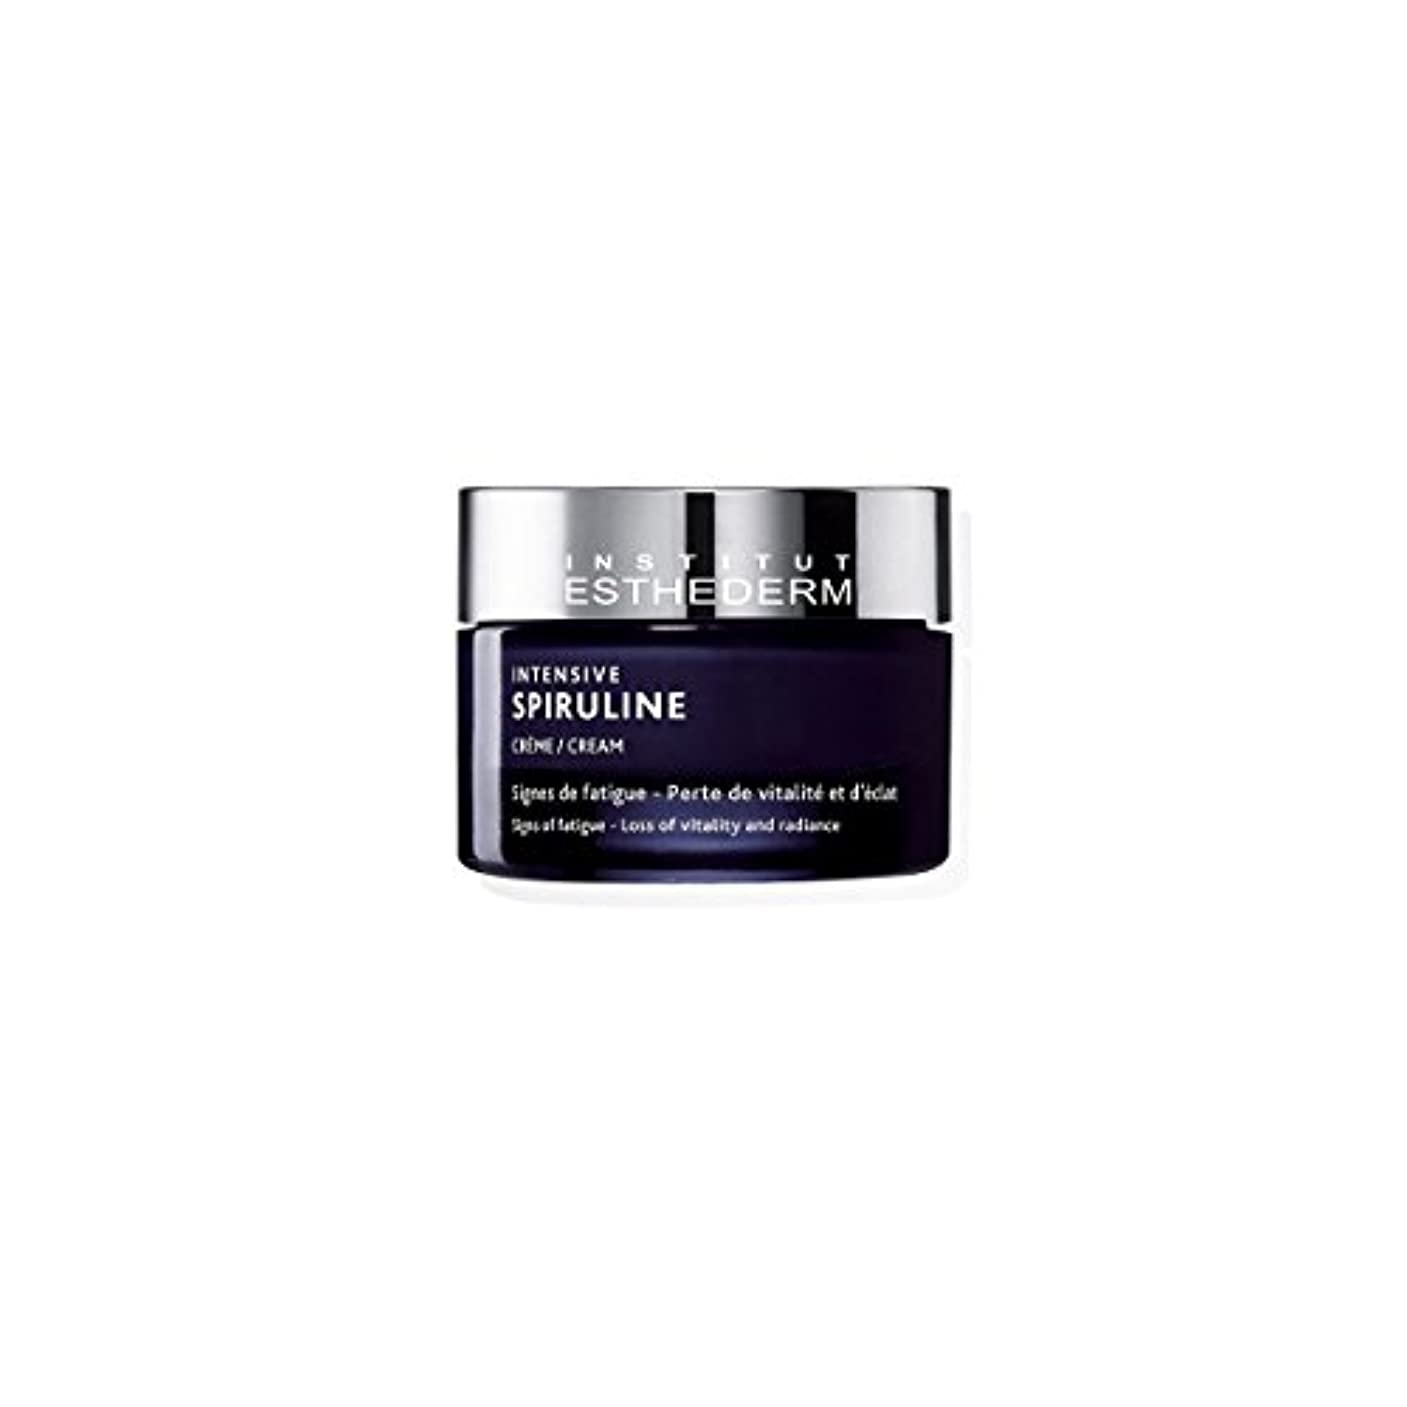 かける広範囲刻むInstitut Esthederm Intensive Spiruline Cream 50ml [並行輸入品]